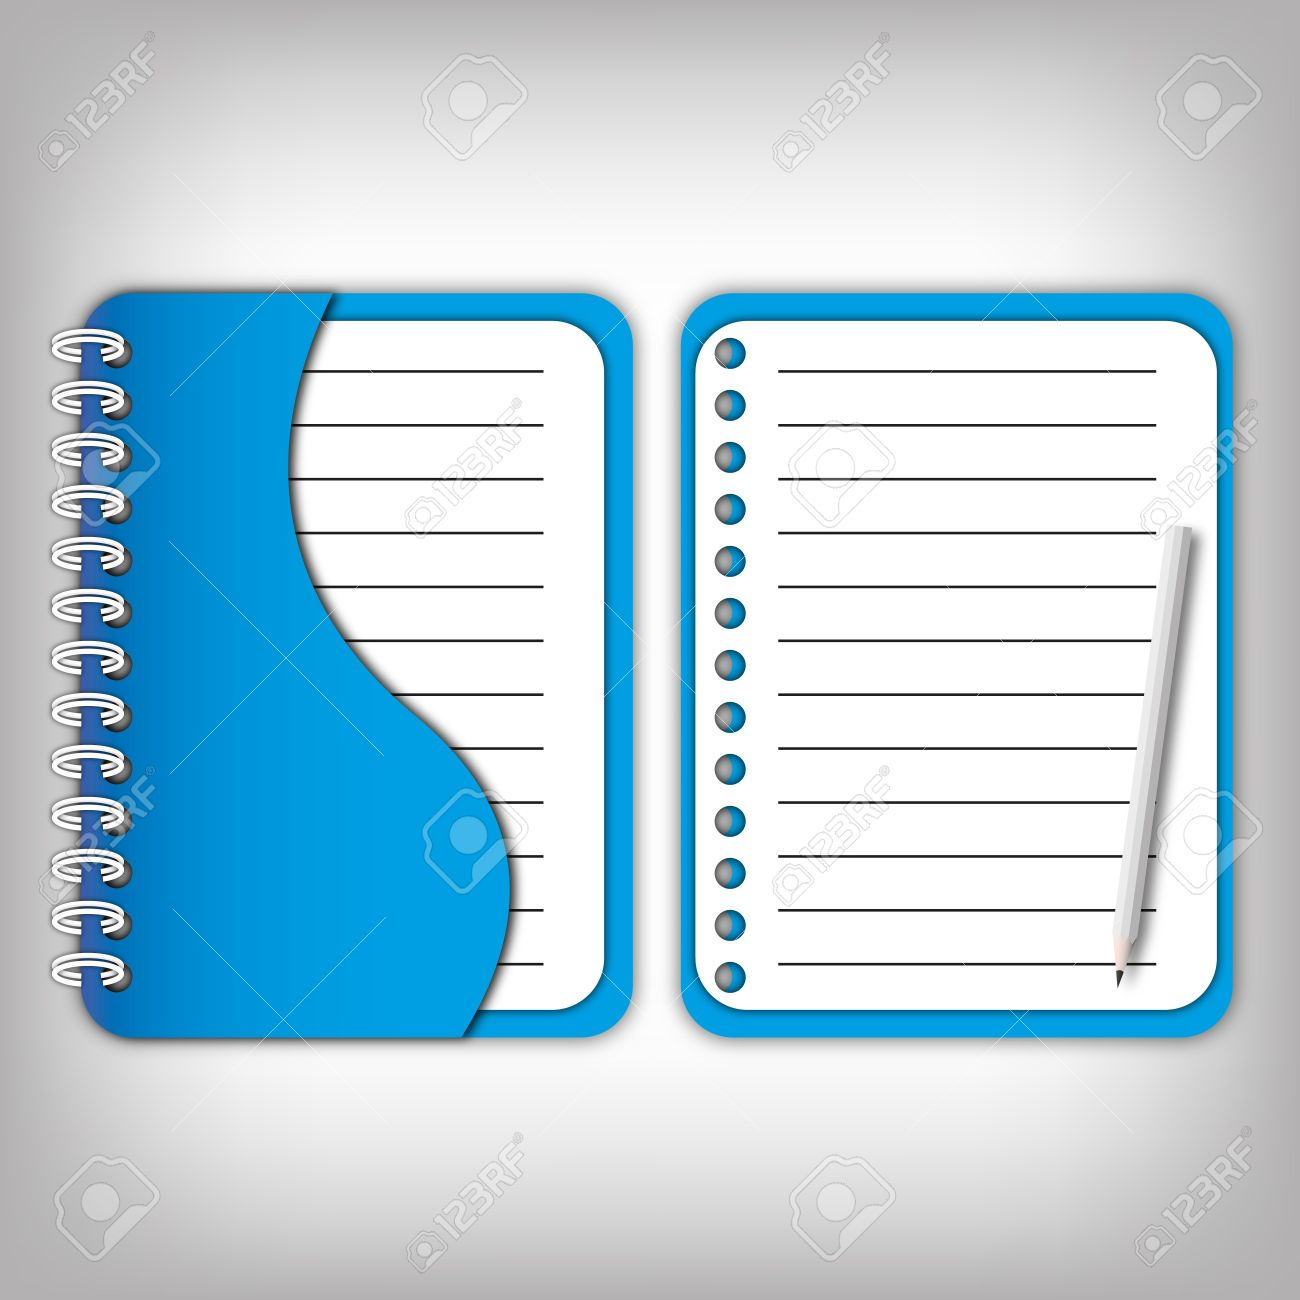 new design cover blue notebook and open page with pencil stock photo 12350171